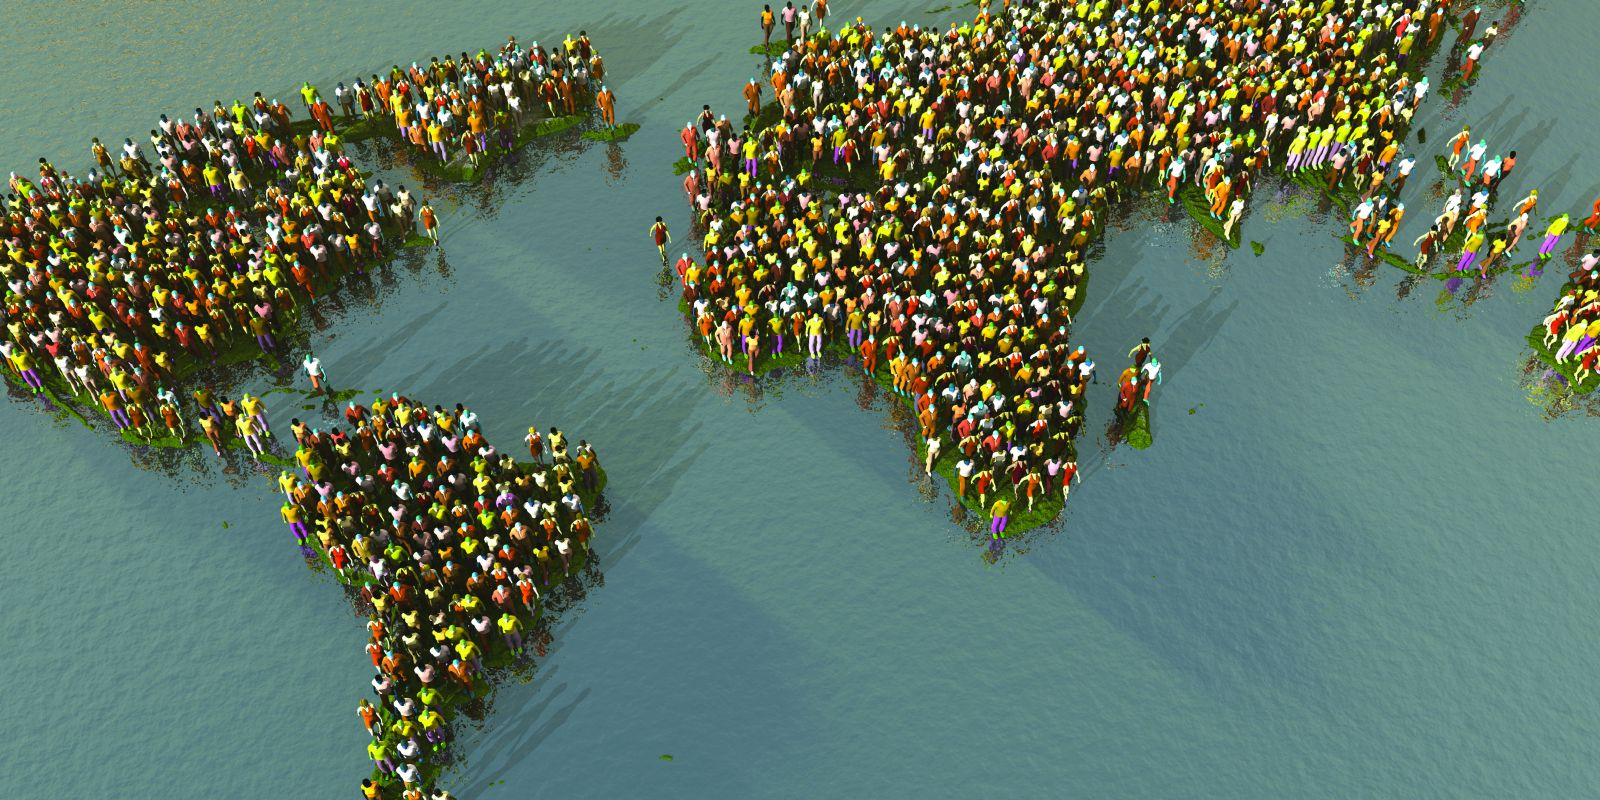 An image of the world map made of standing people, representing research in Strategy and Marketing